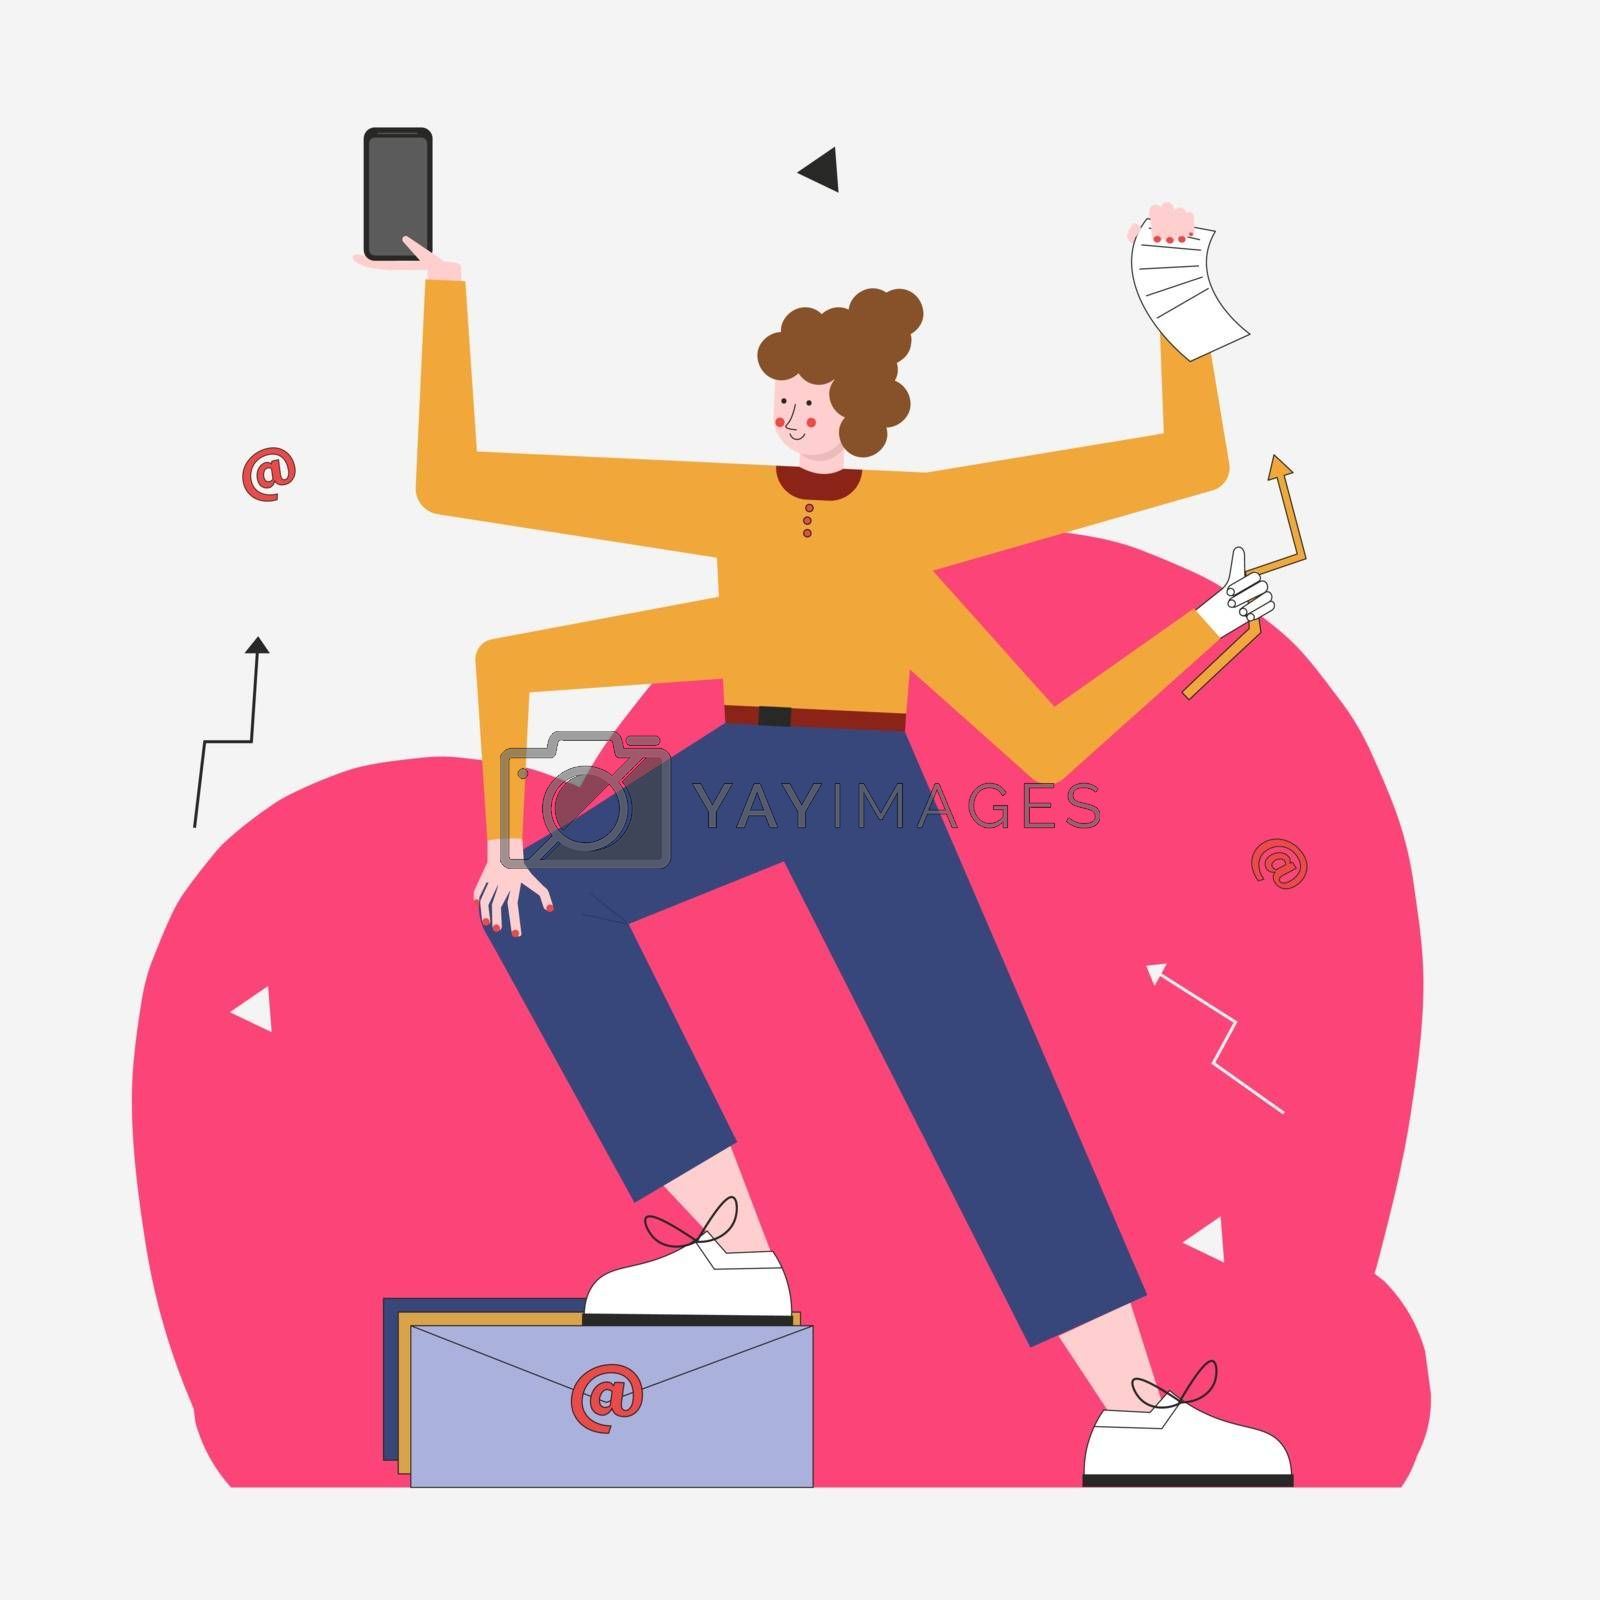 Vector of a multitasking business woman with many hands performing several tasks at the same time